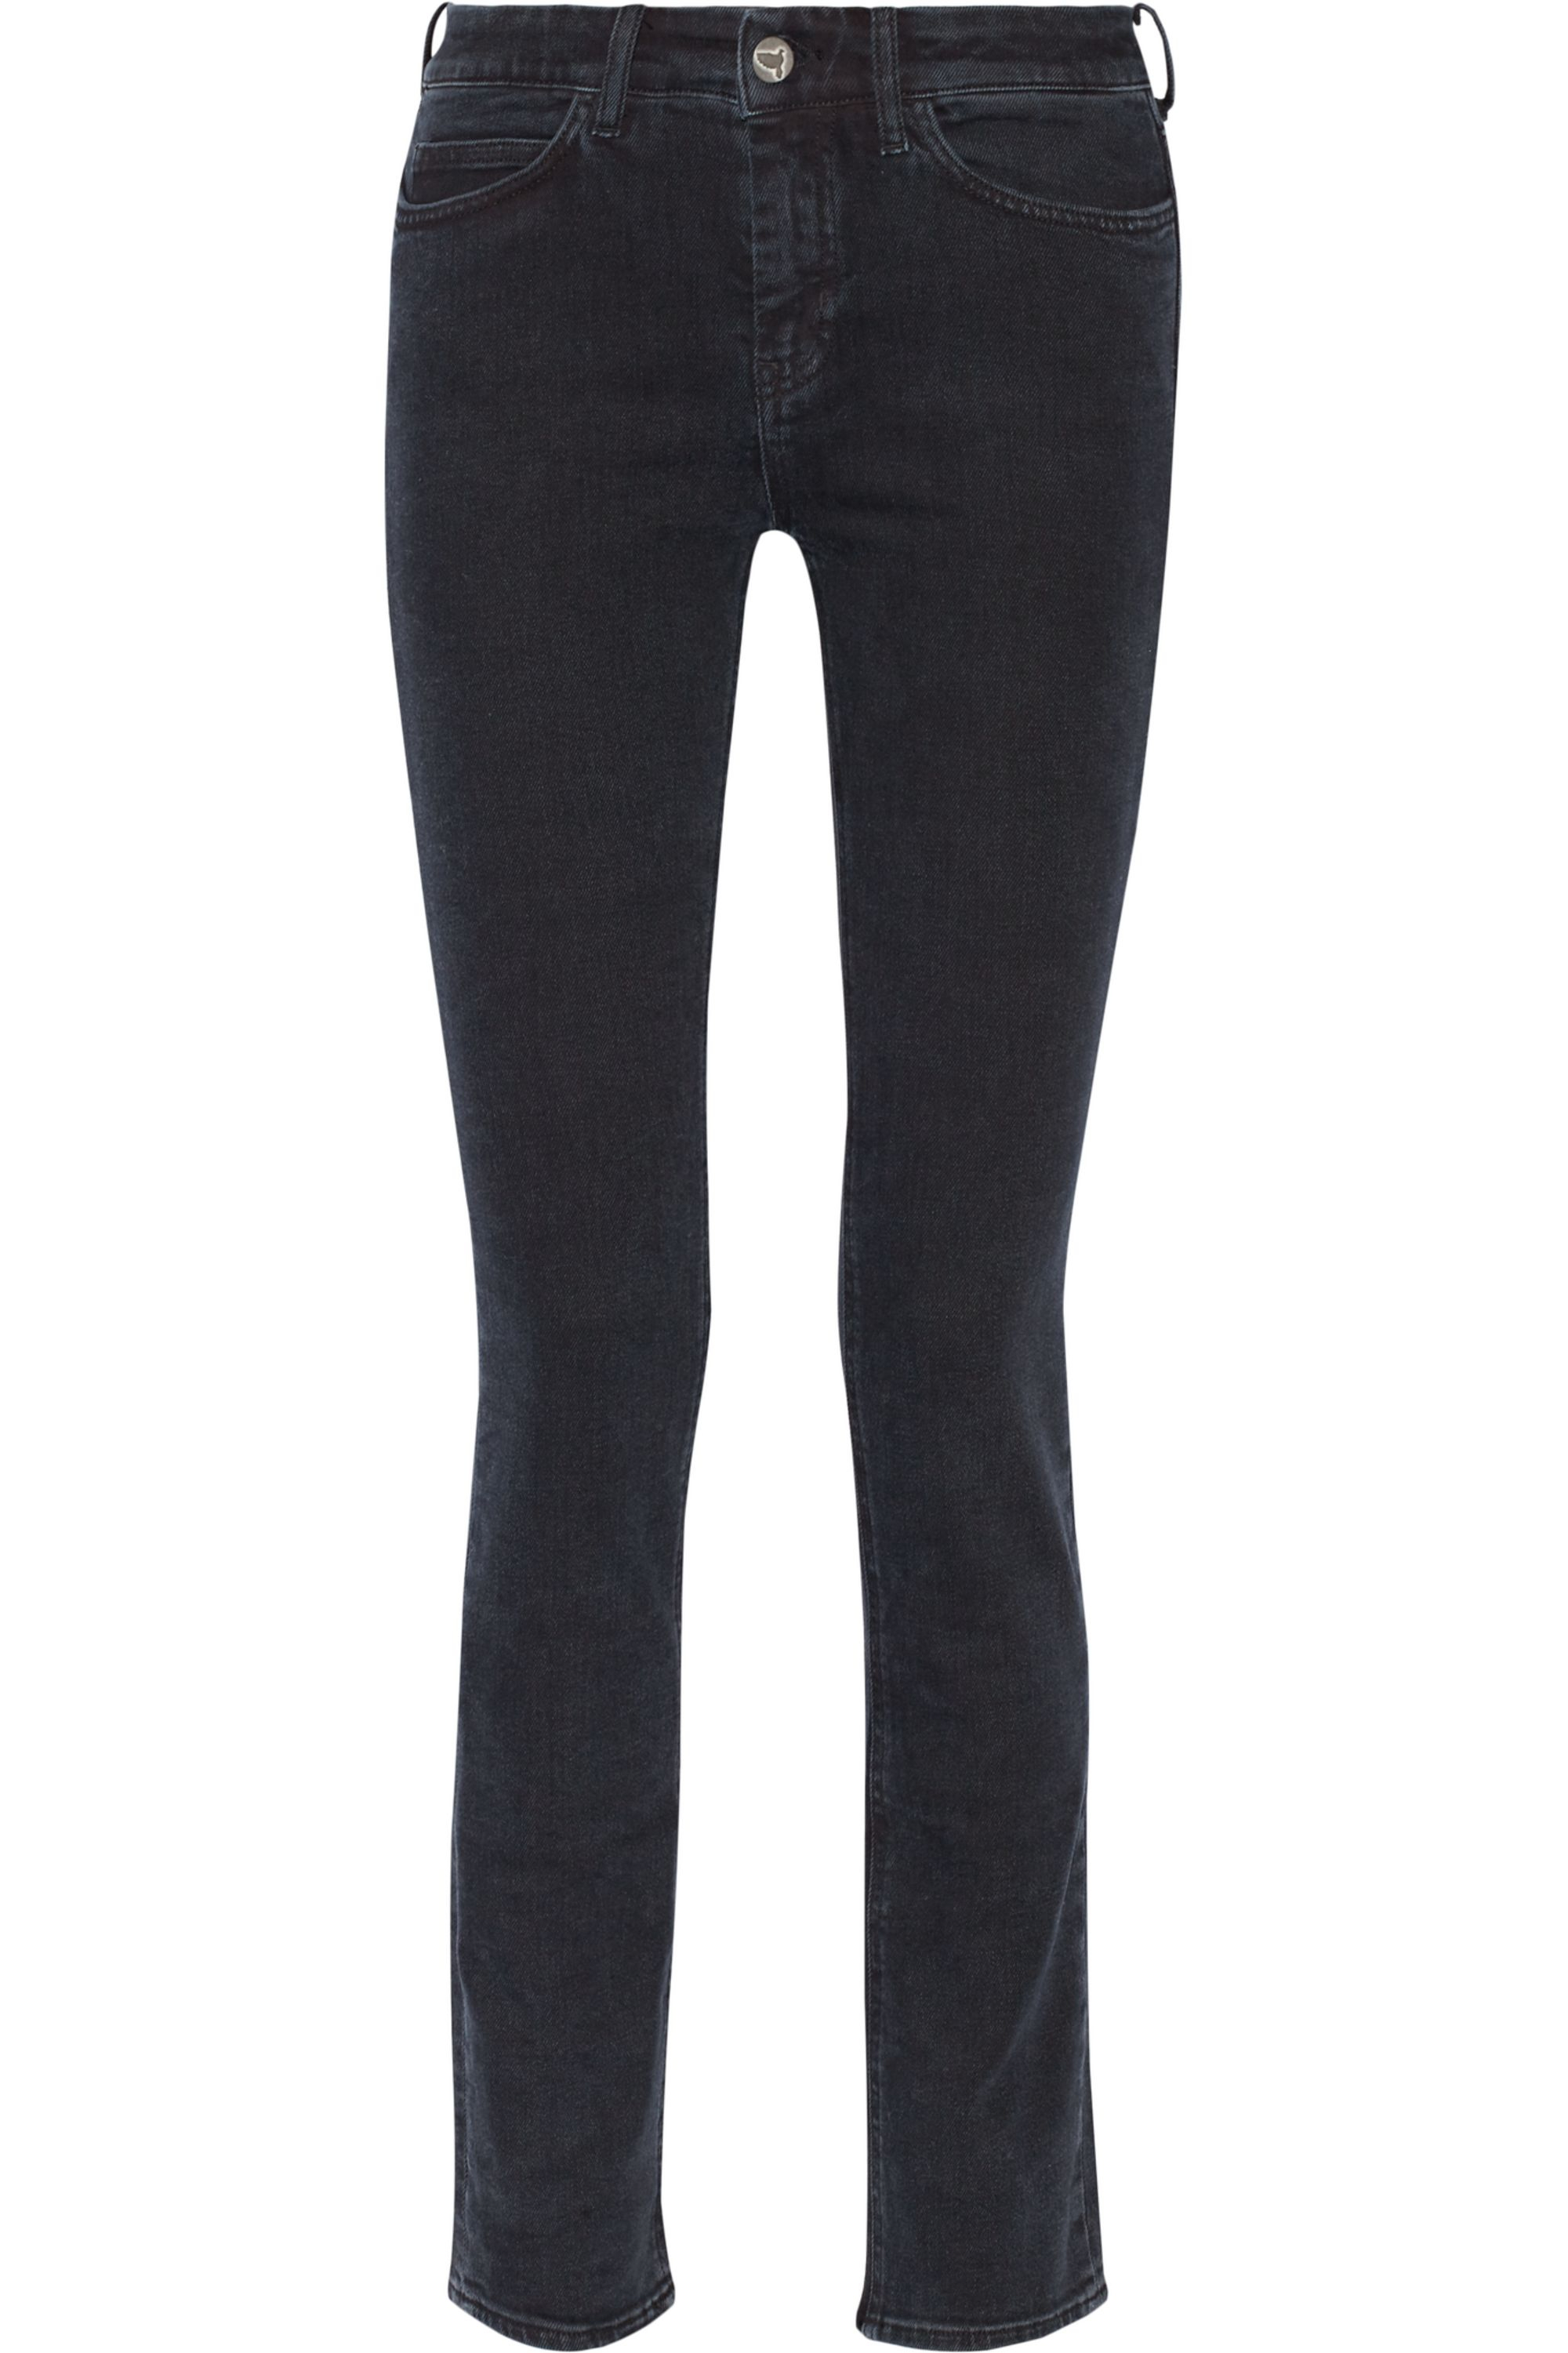 M.i.h Jeans The Daily high-rise skinny jeans